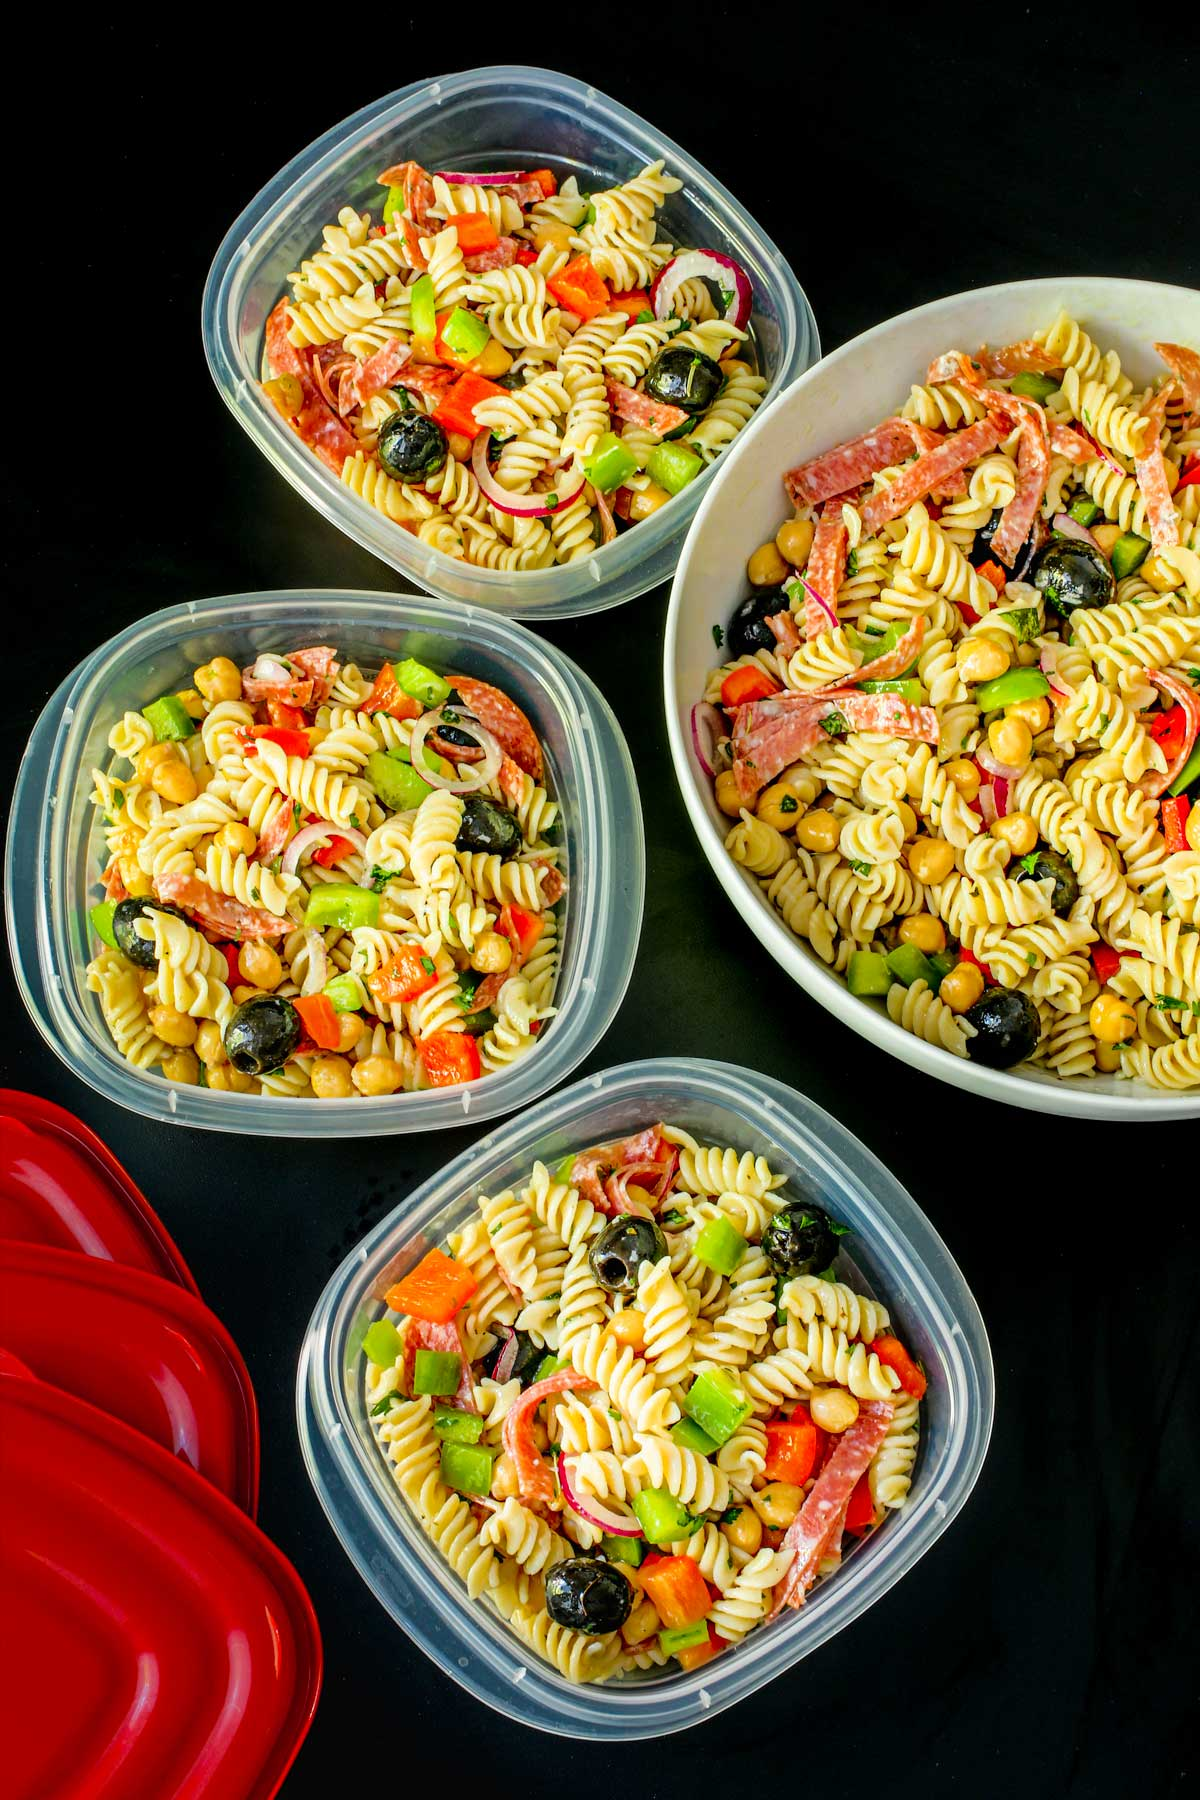 large bowl of pasta salad next to filled meal prep boxes with red lids on black table top.